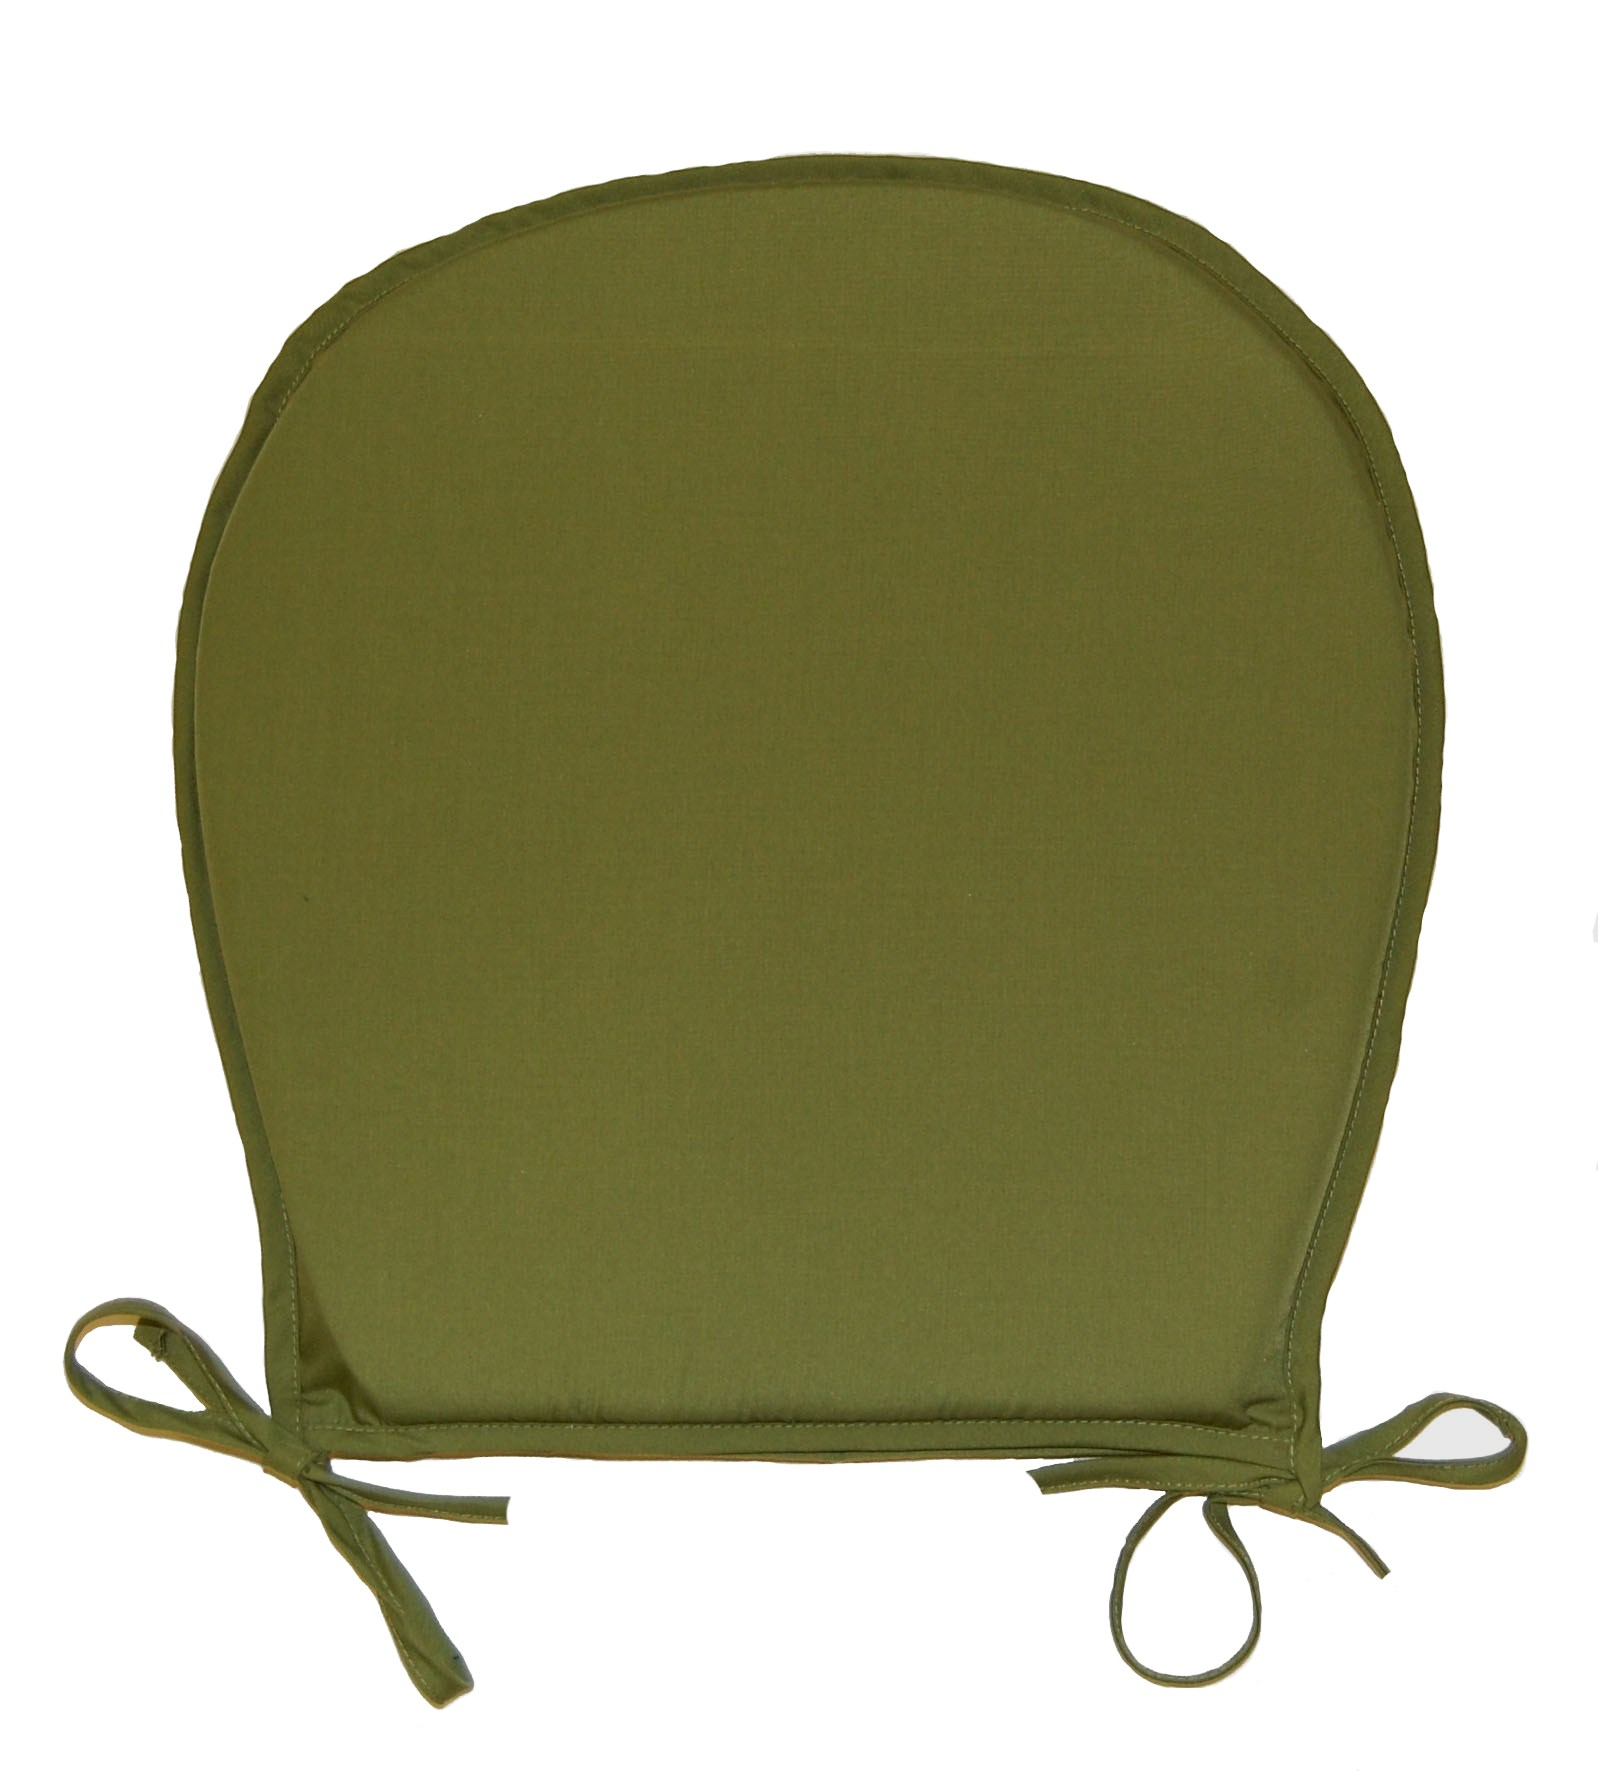 Wonderful Chair Seat Pad 1598 x 1771 · 166 kB · jpeg